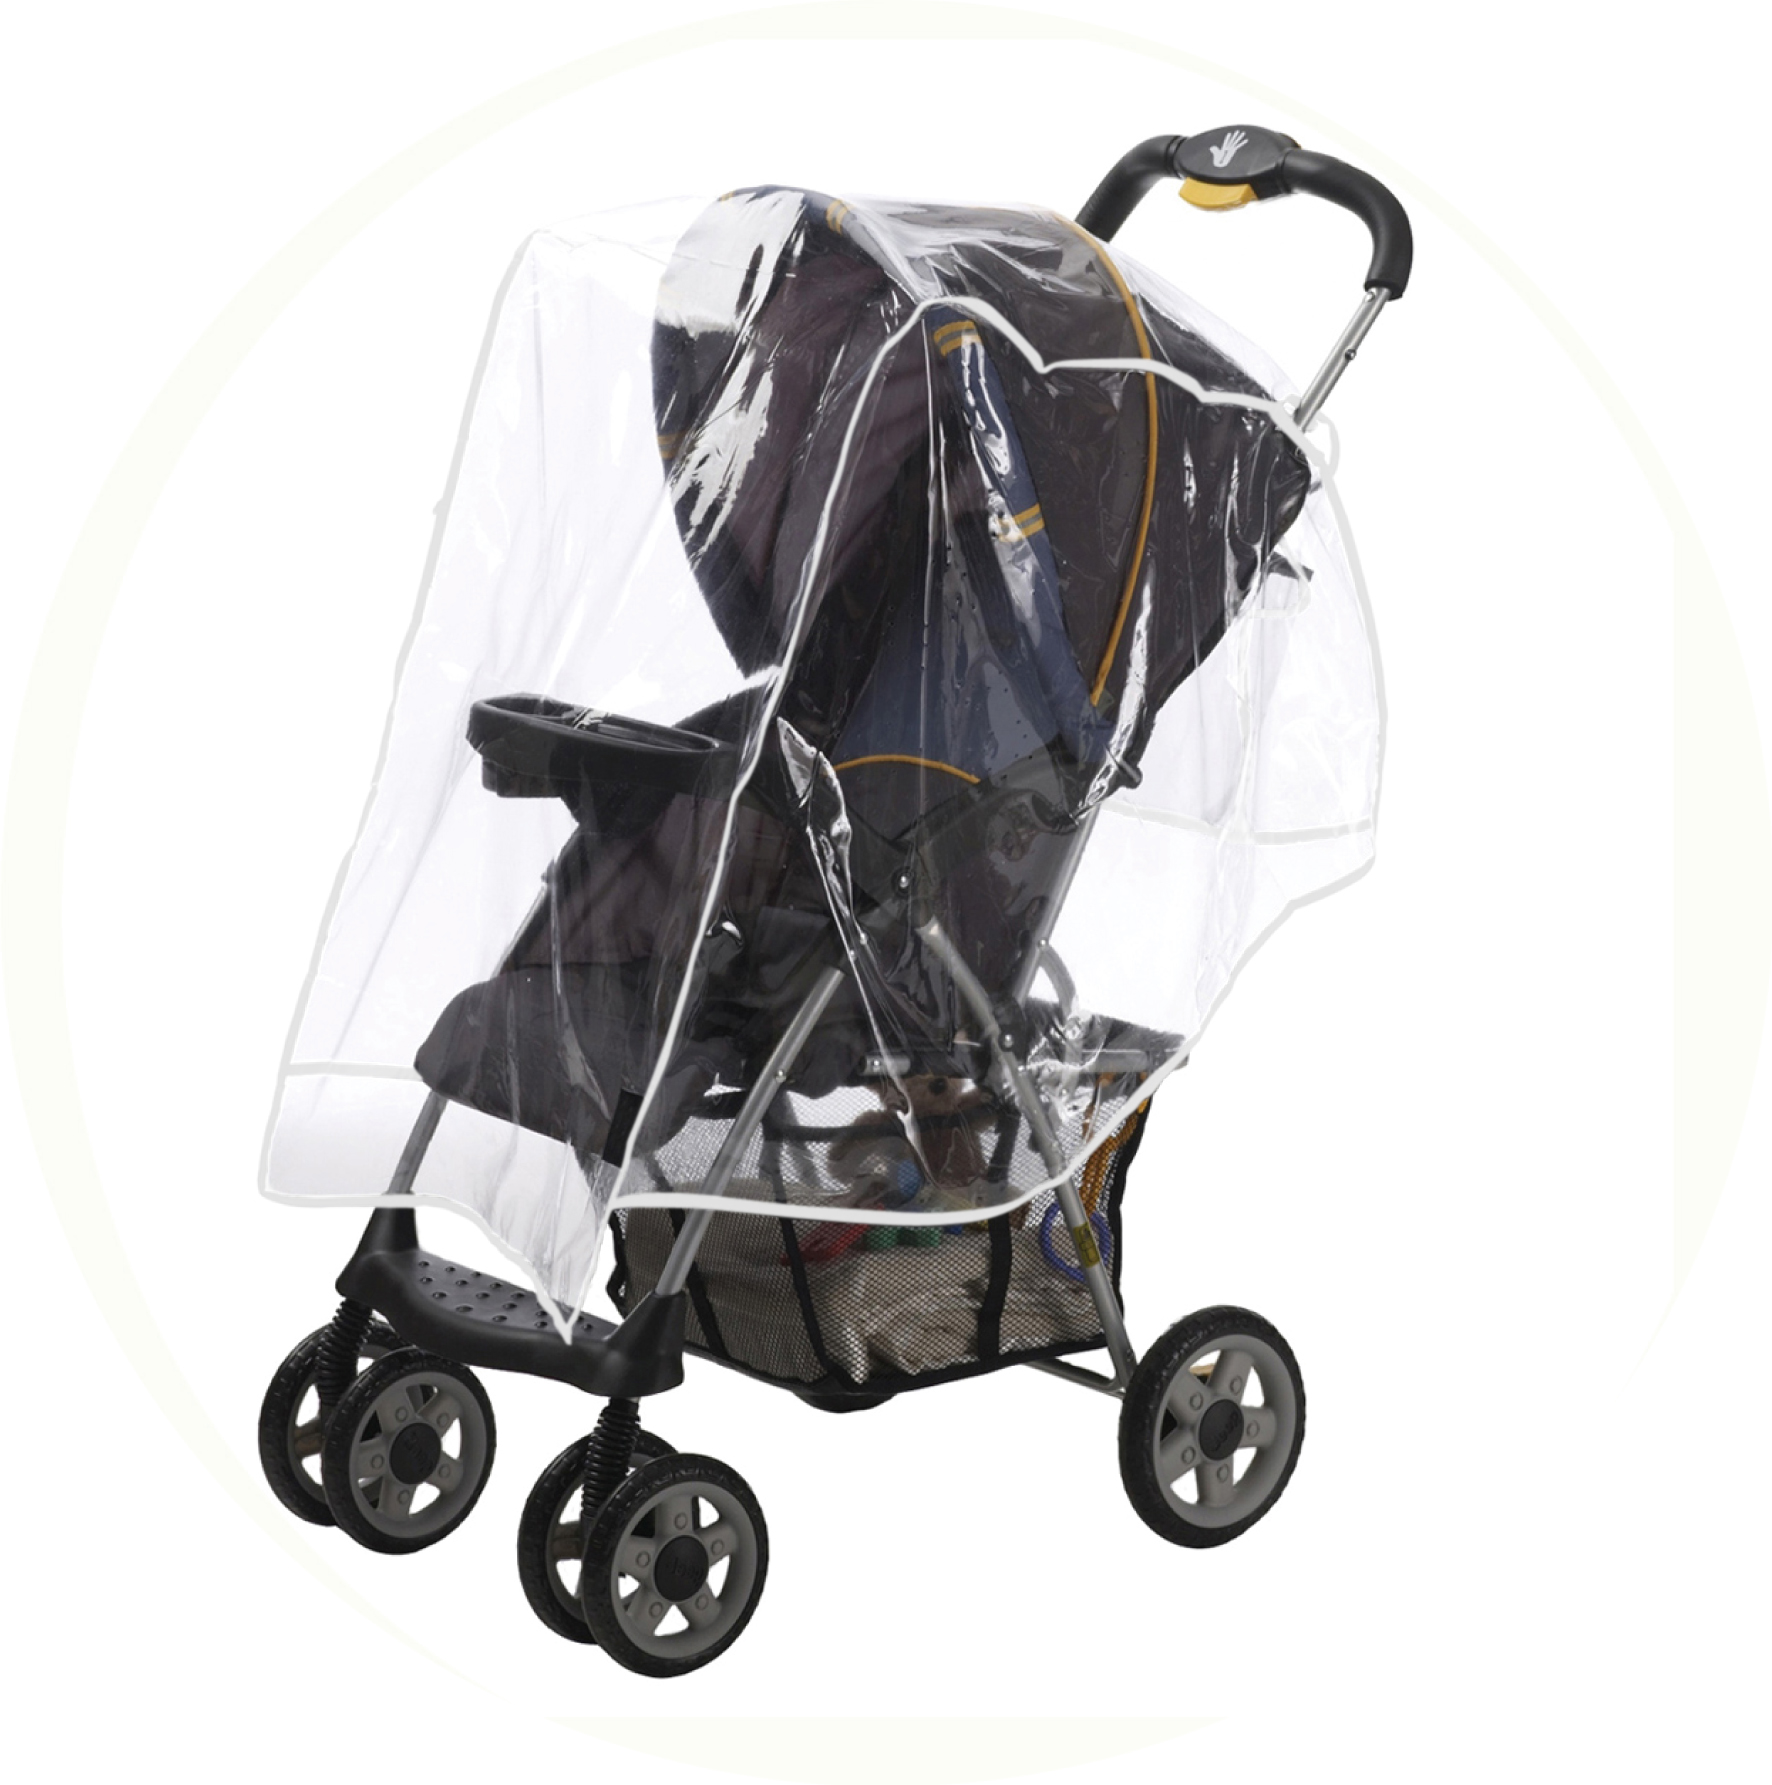 Stroller Weather Shield